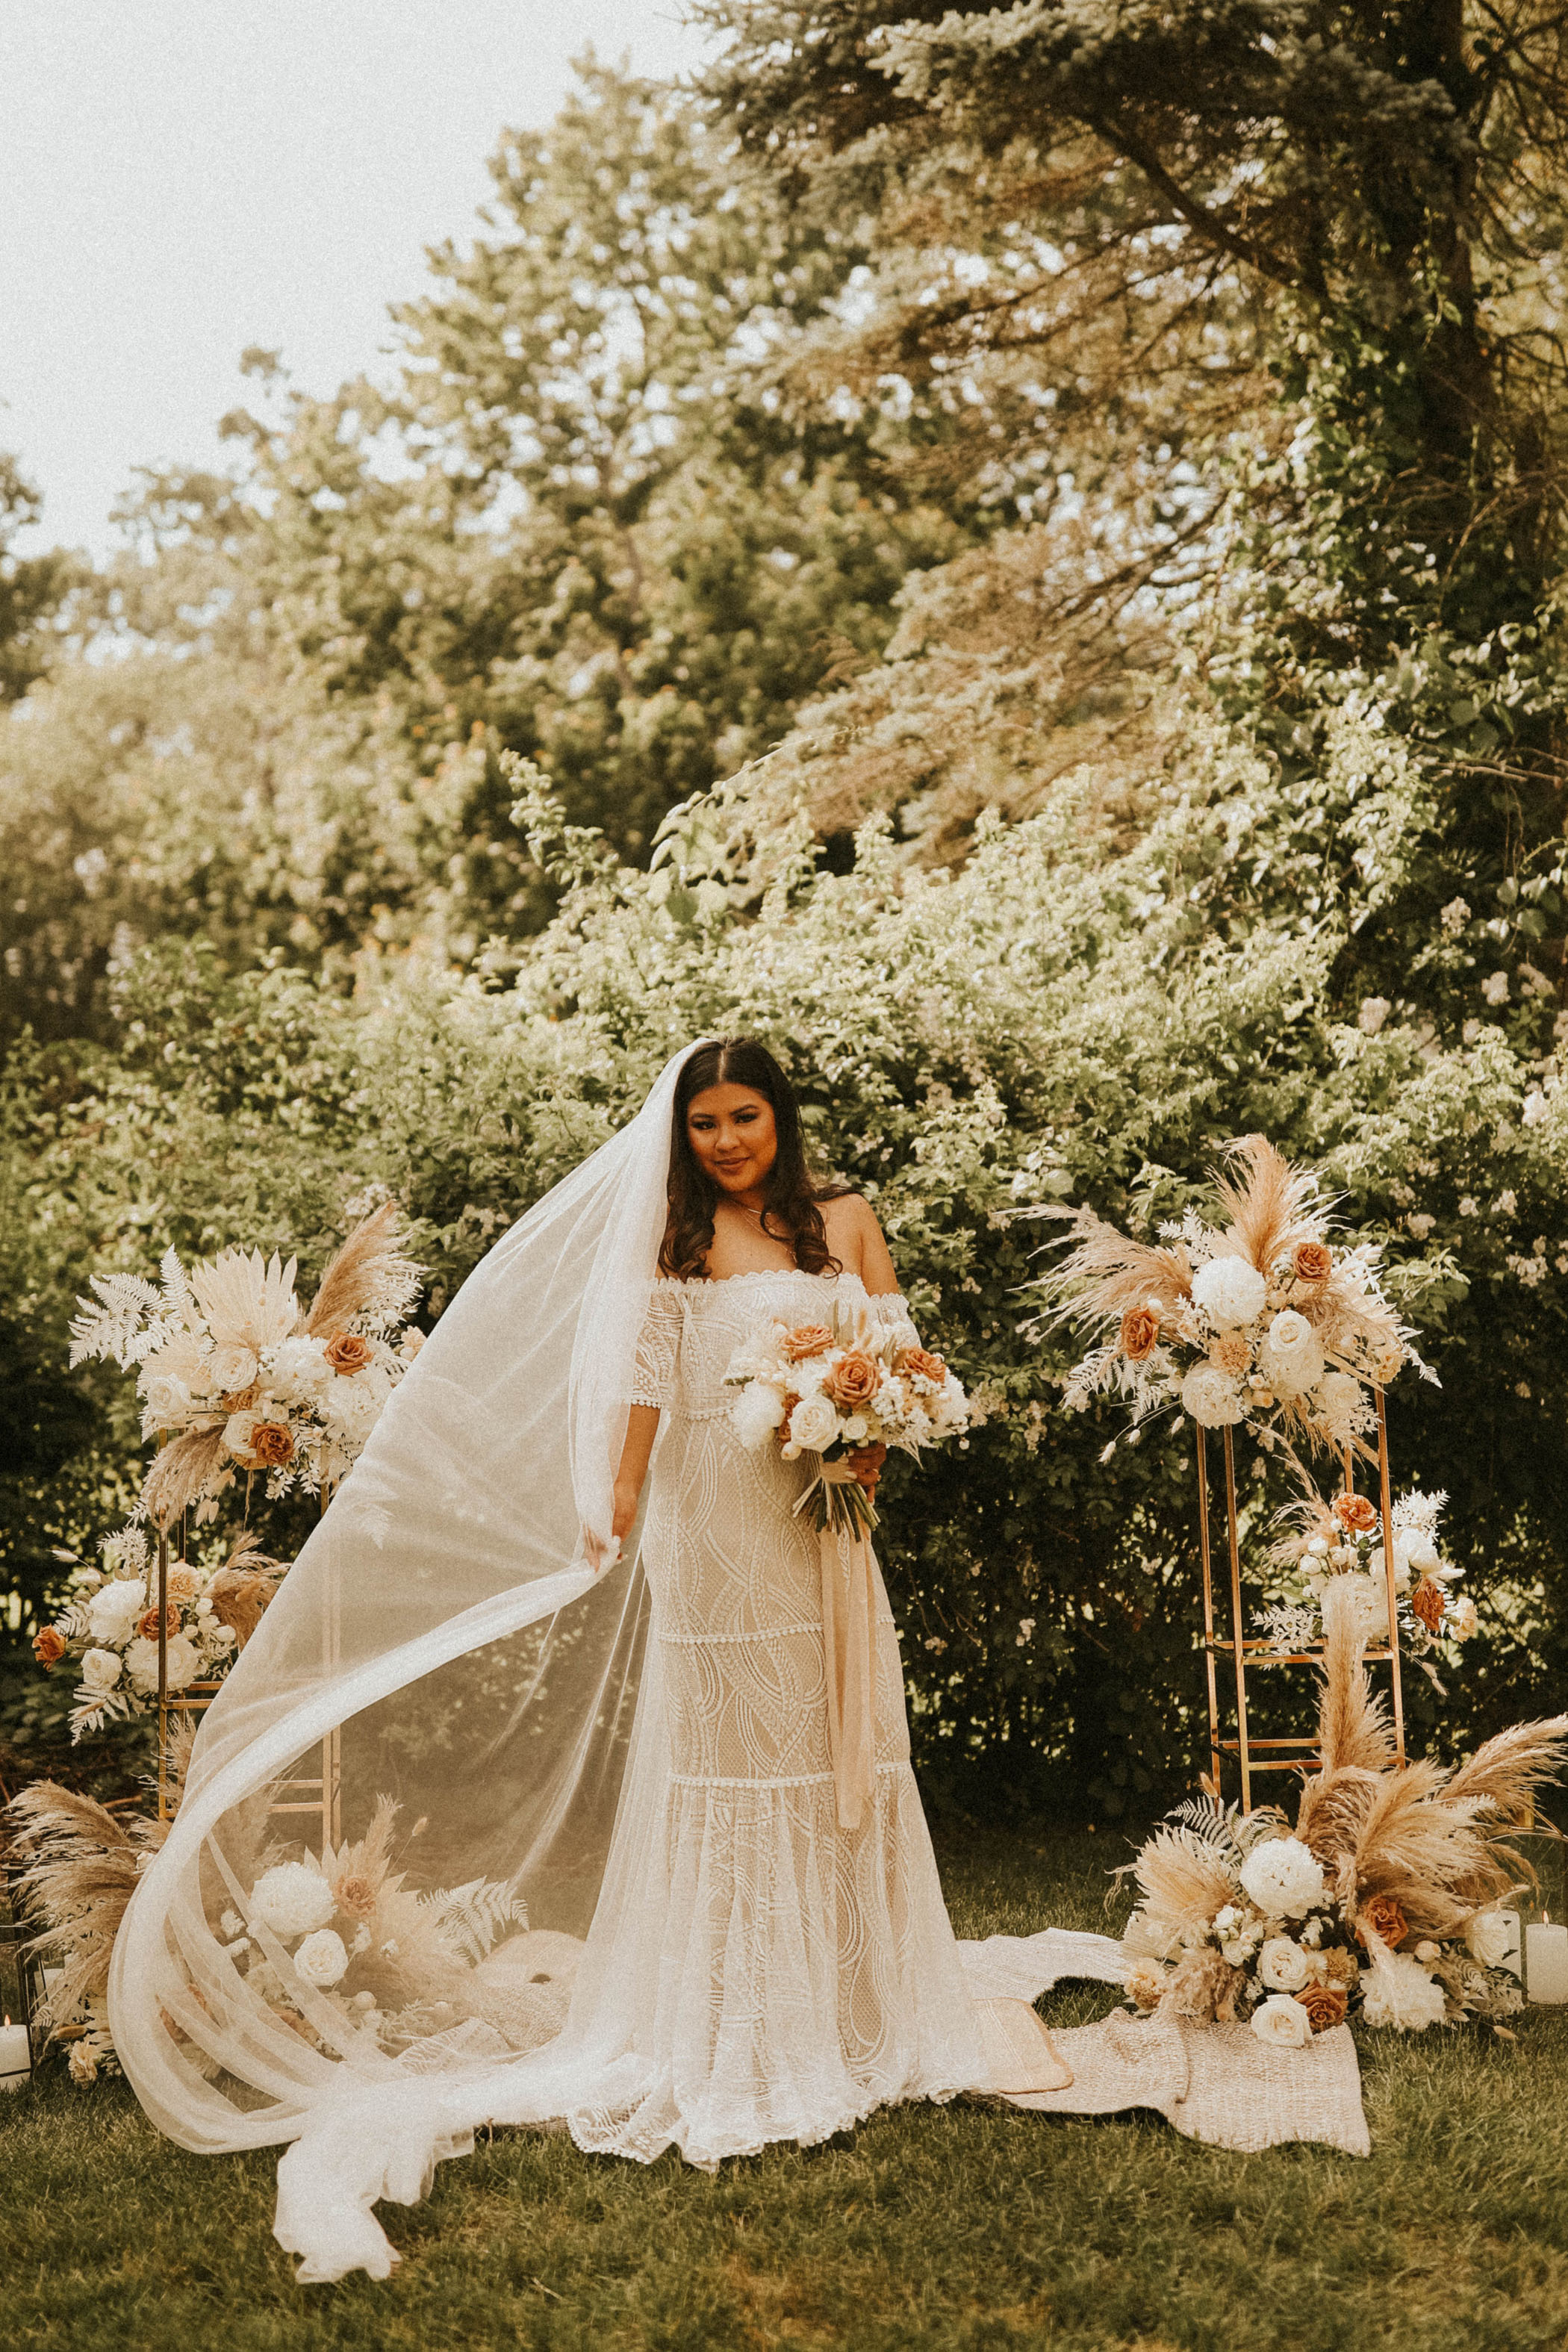 Boho bride in her at-home backyard elopement ceremony